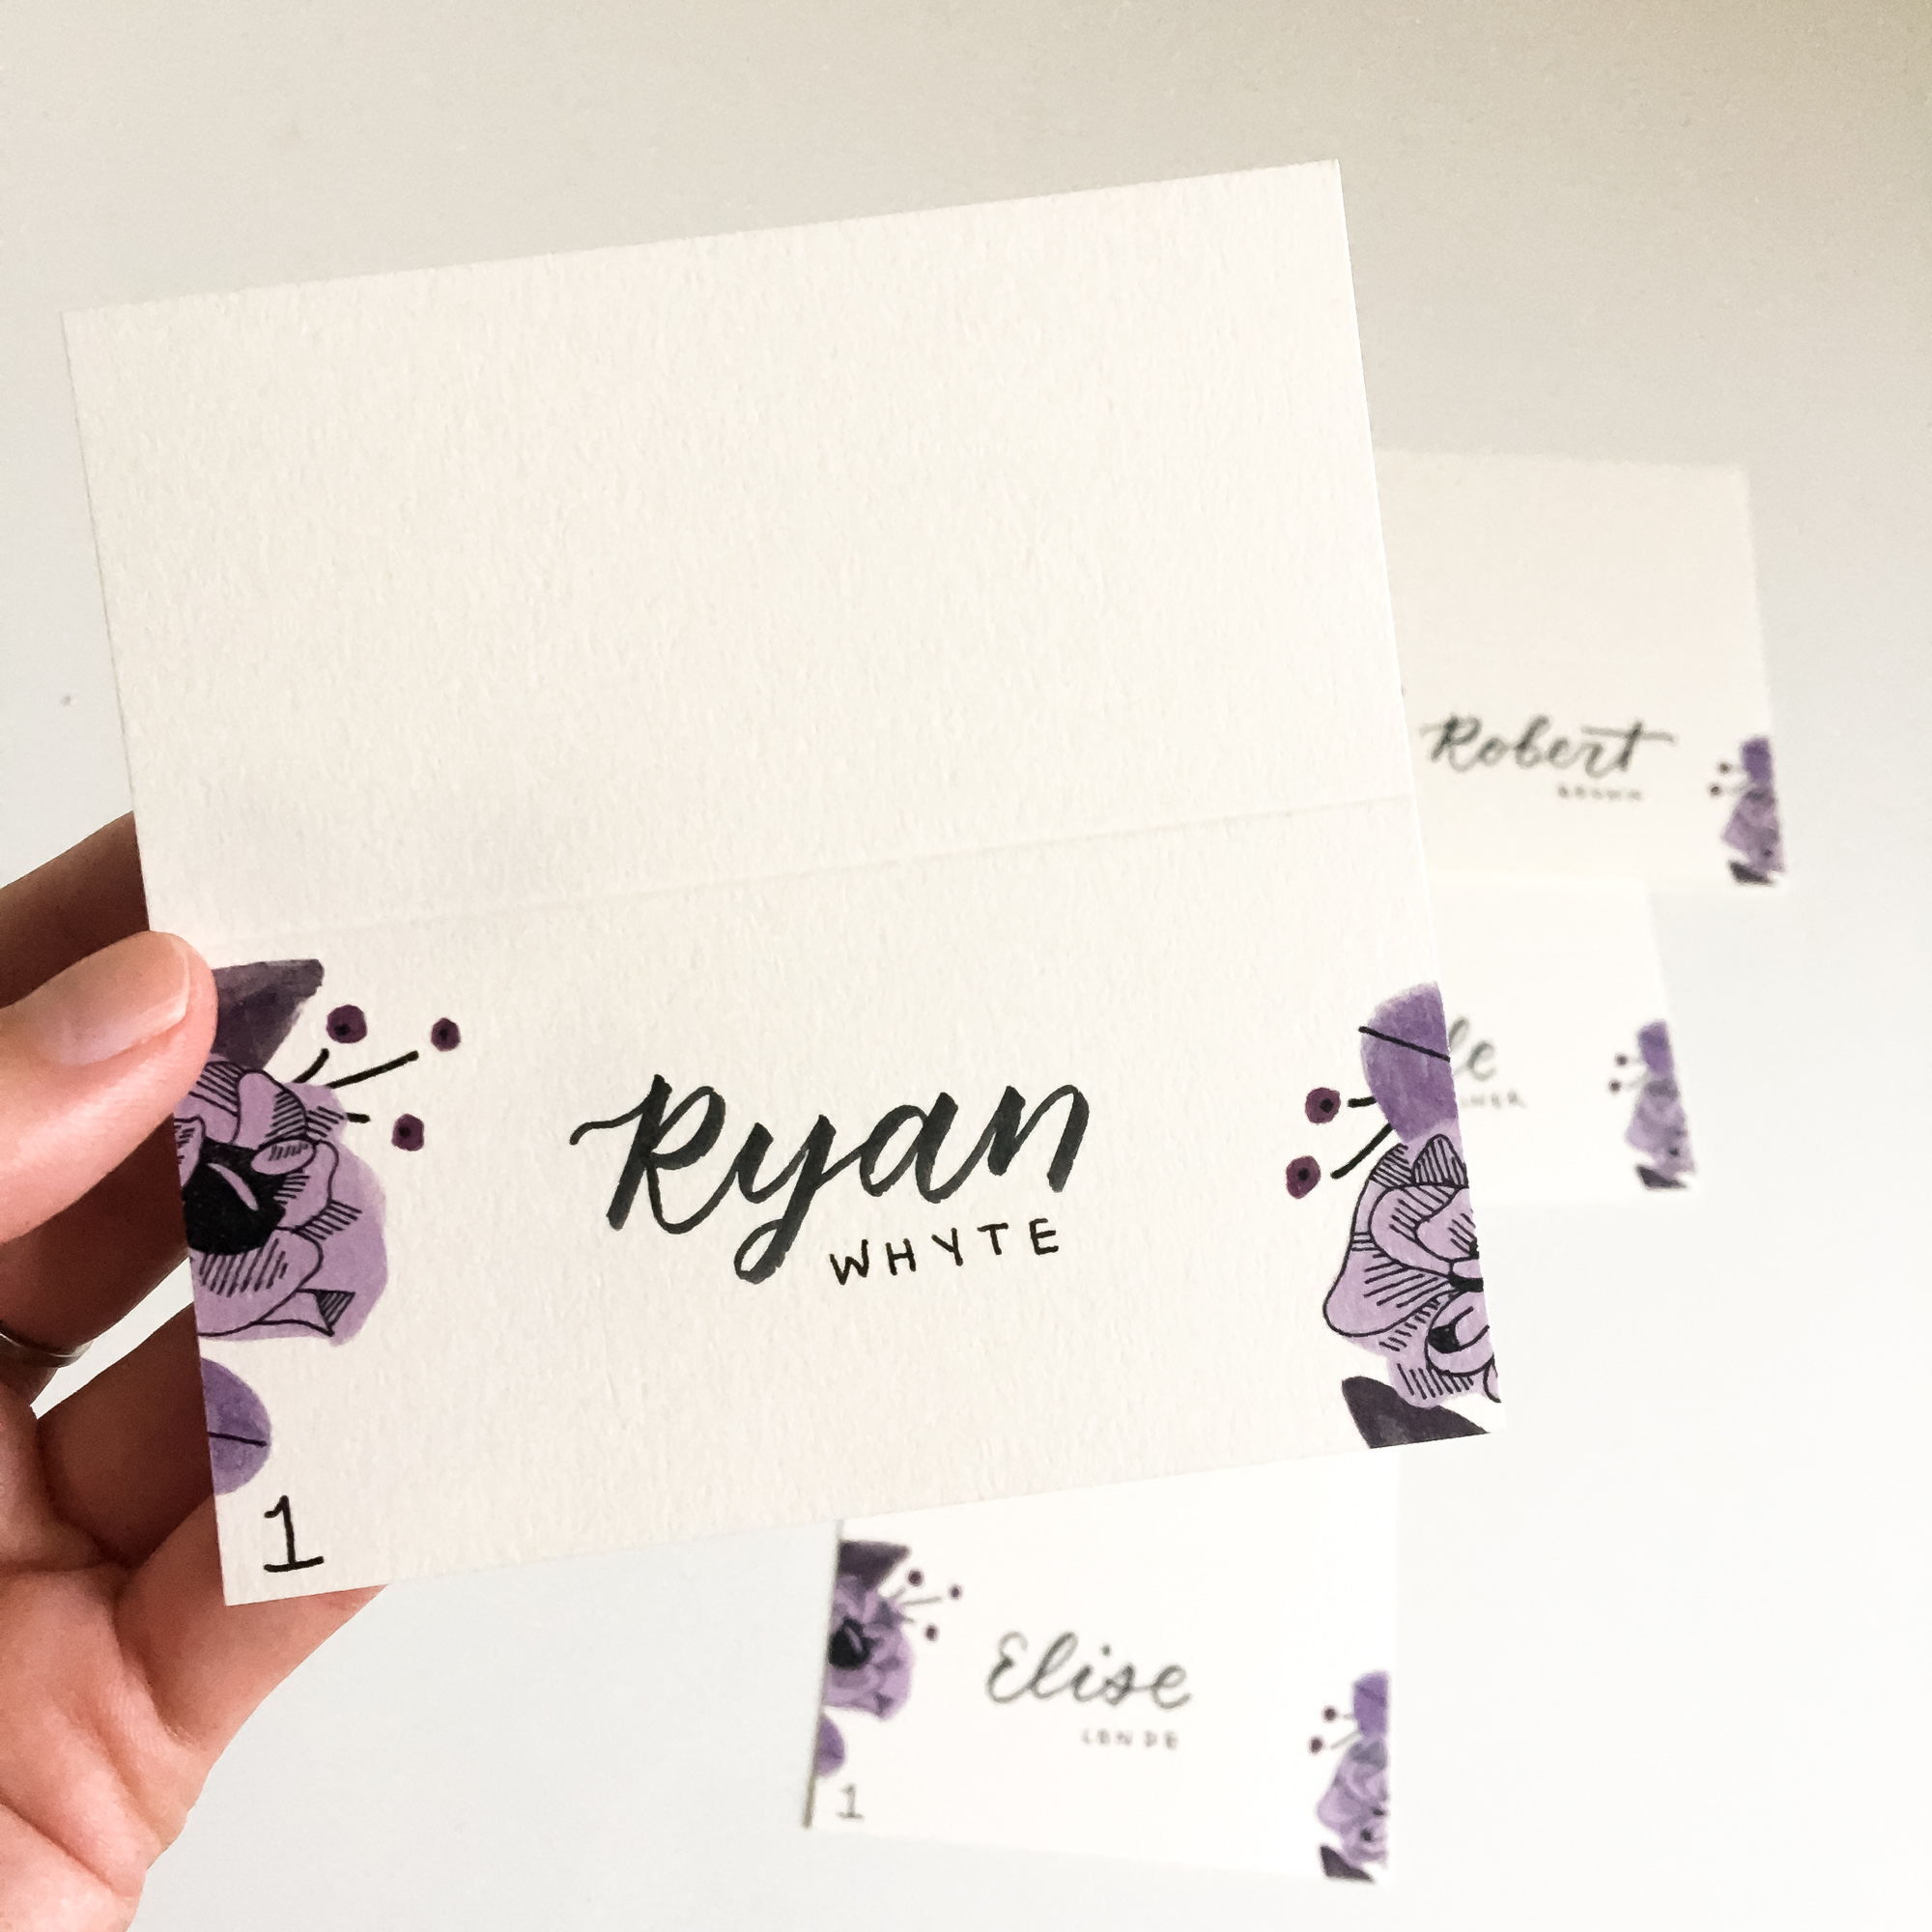 Hand holding a place card for Ryan Whyte, table 1